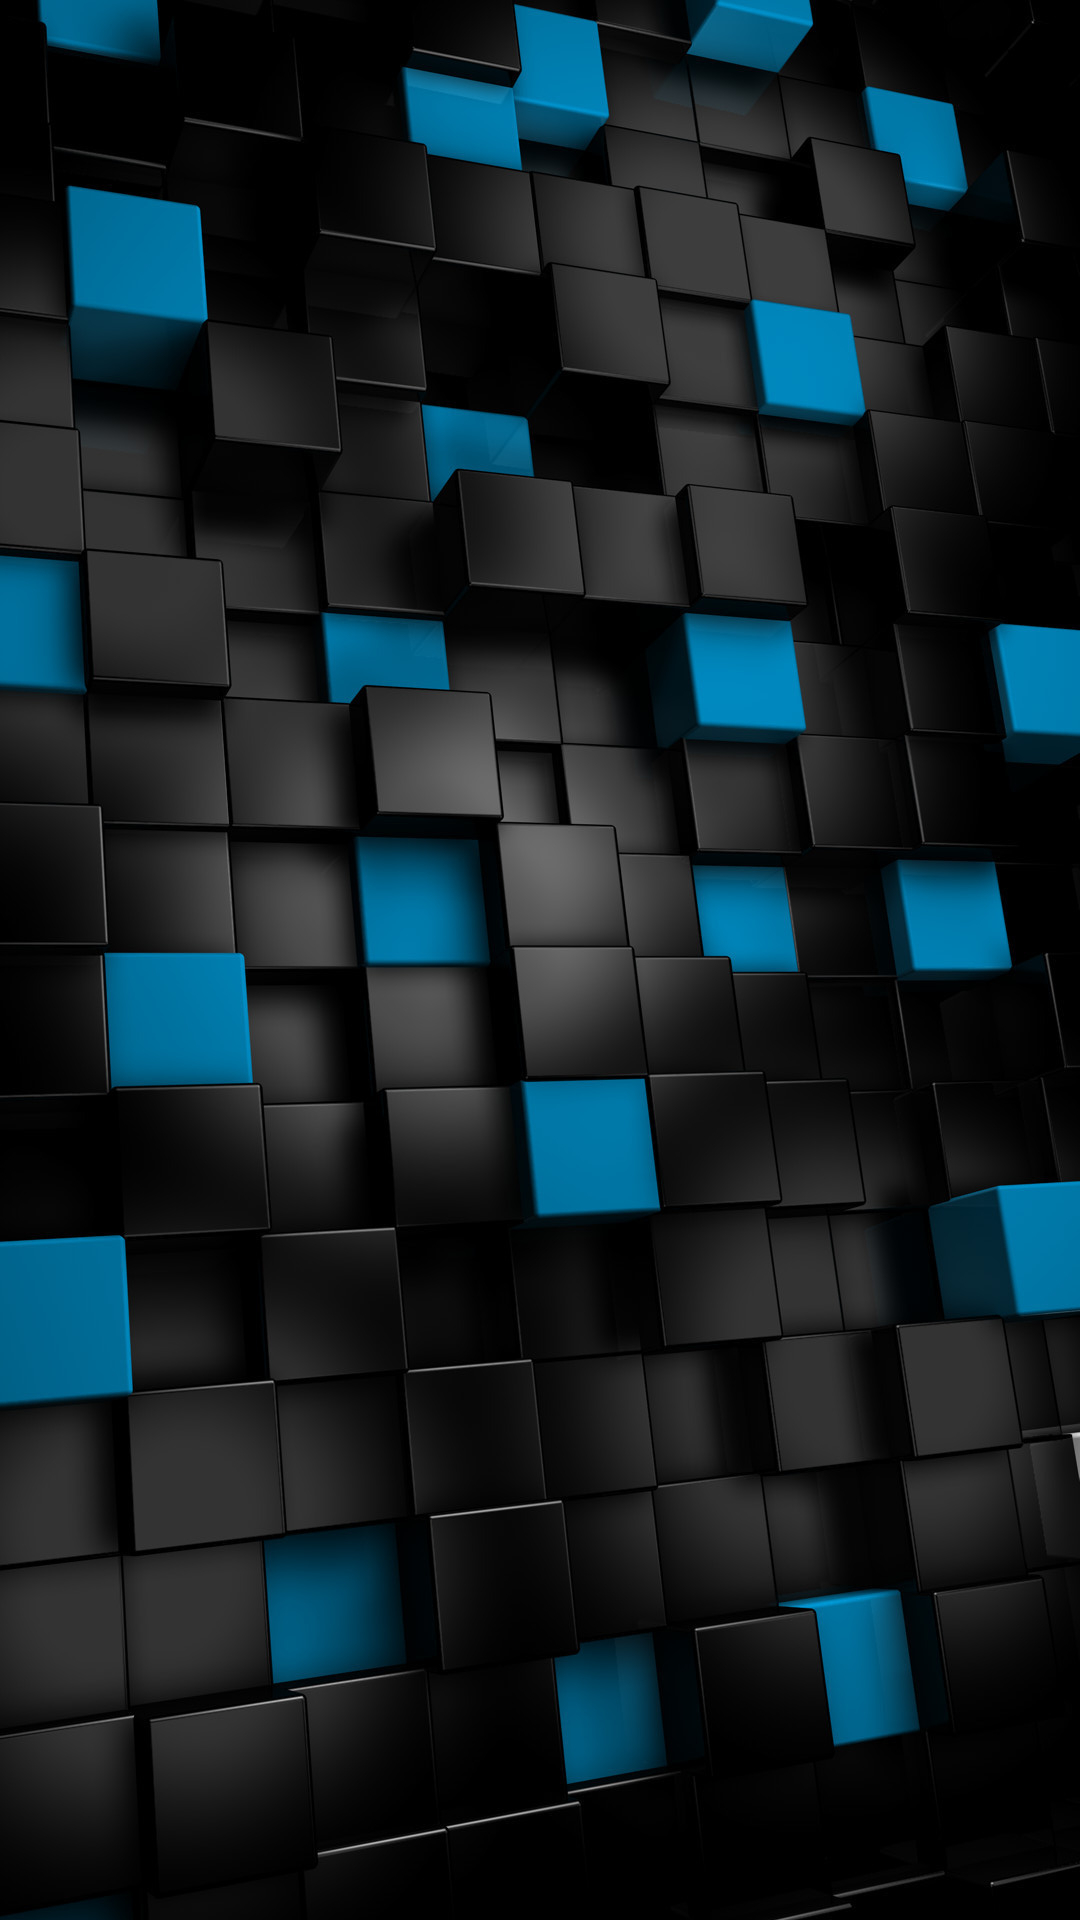 Abstract black cubes htc one wallpaper best htc one for Abstract smartphone wallpaper